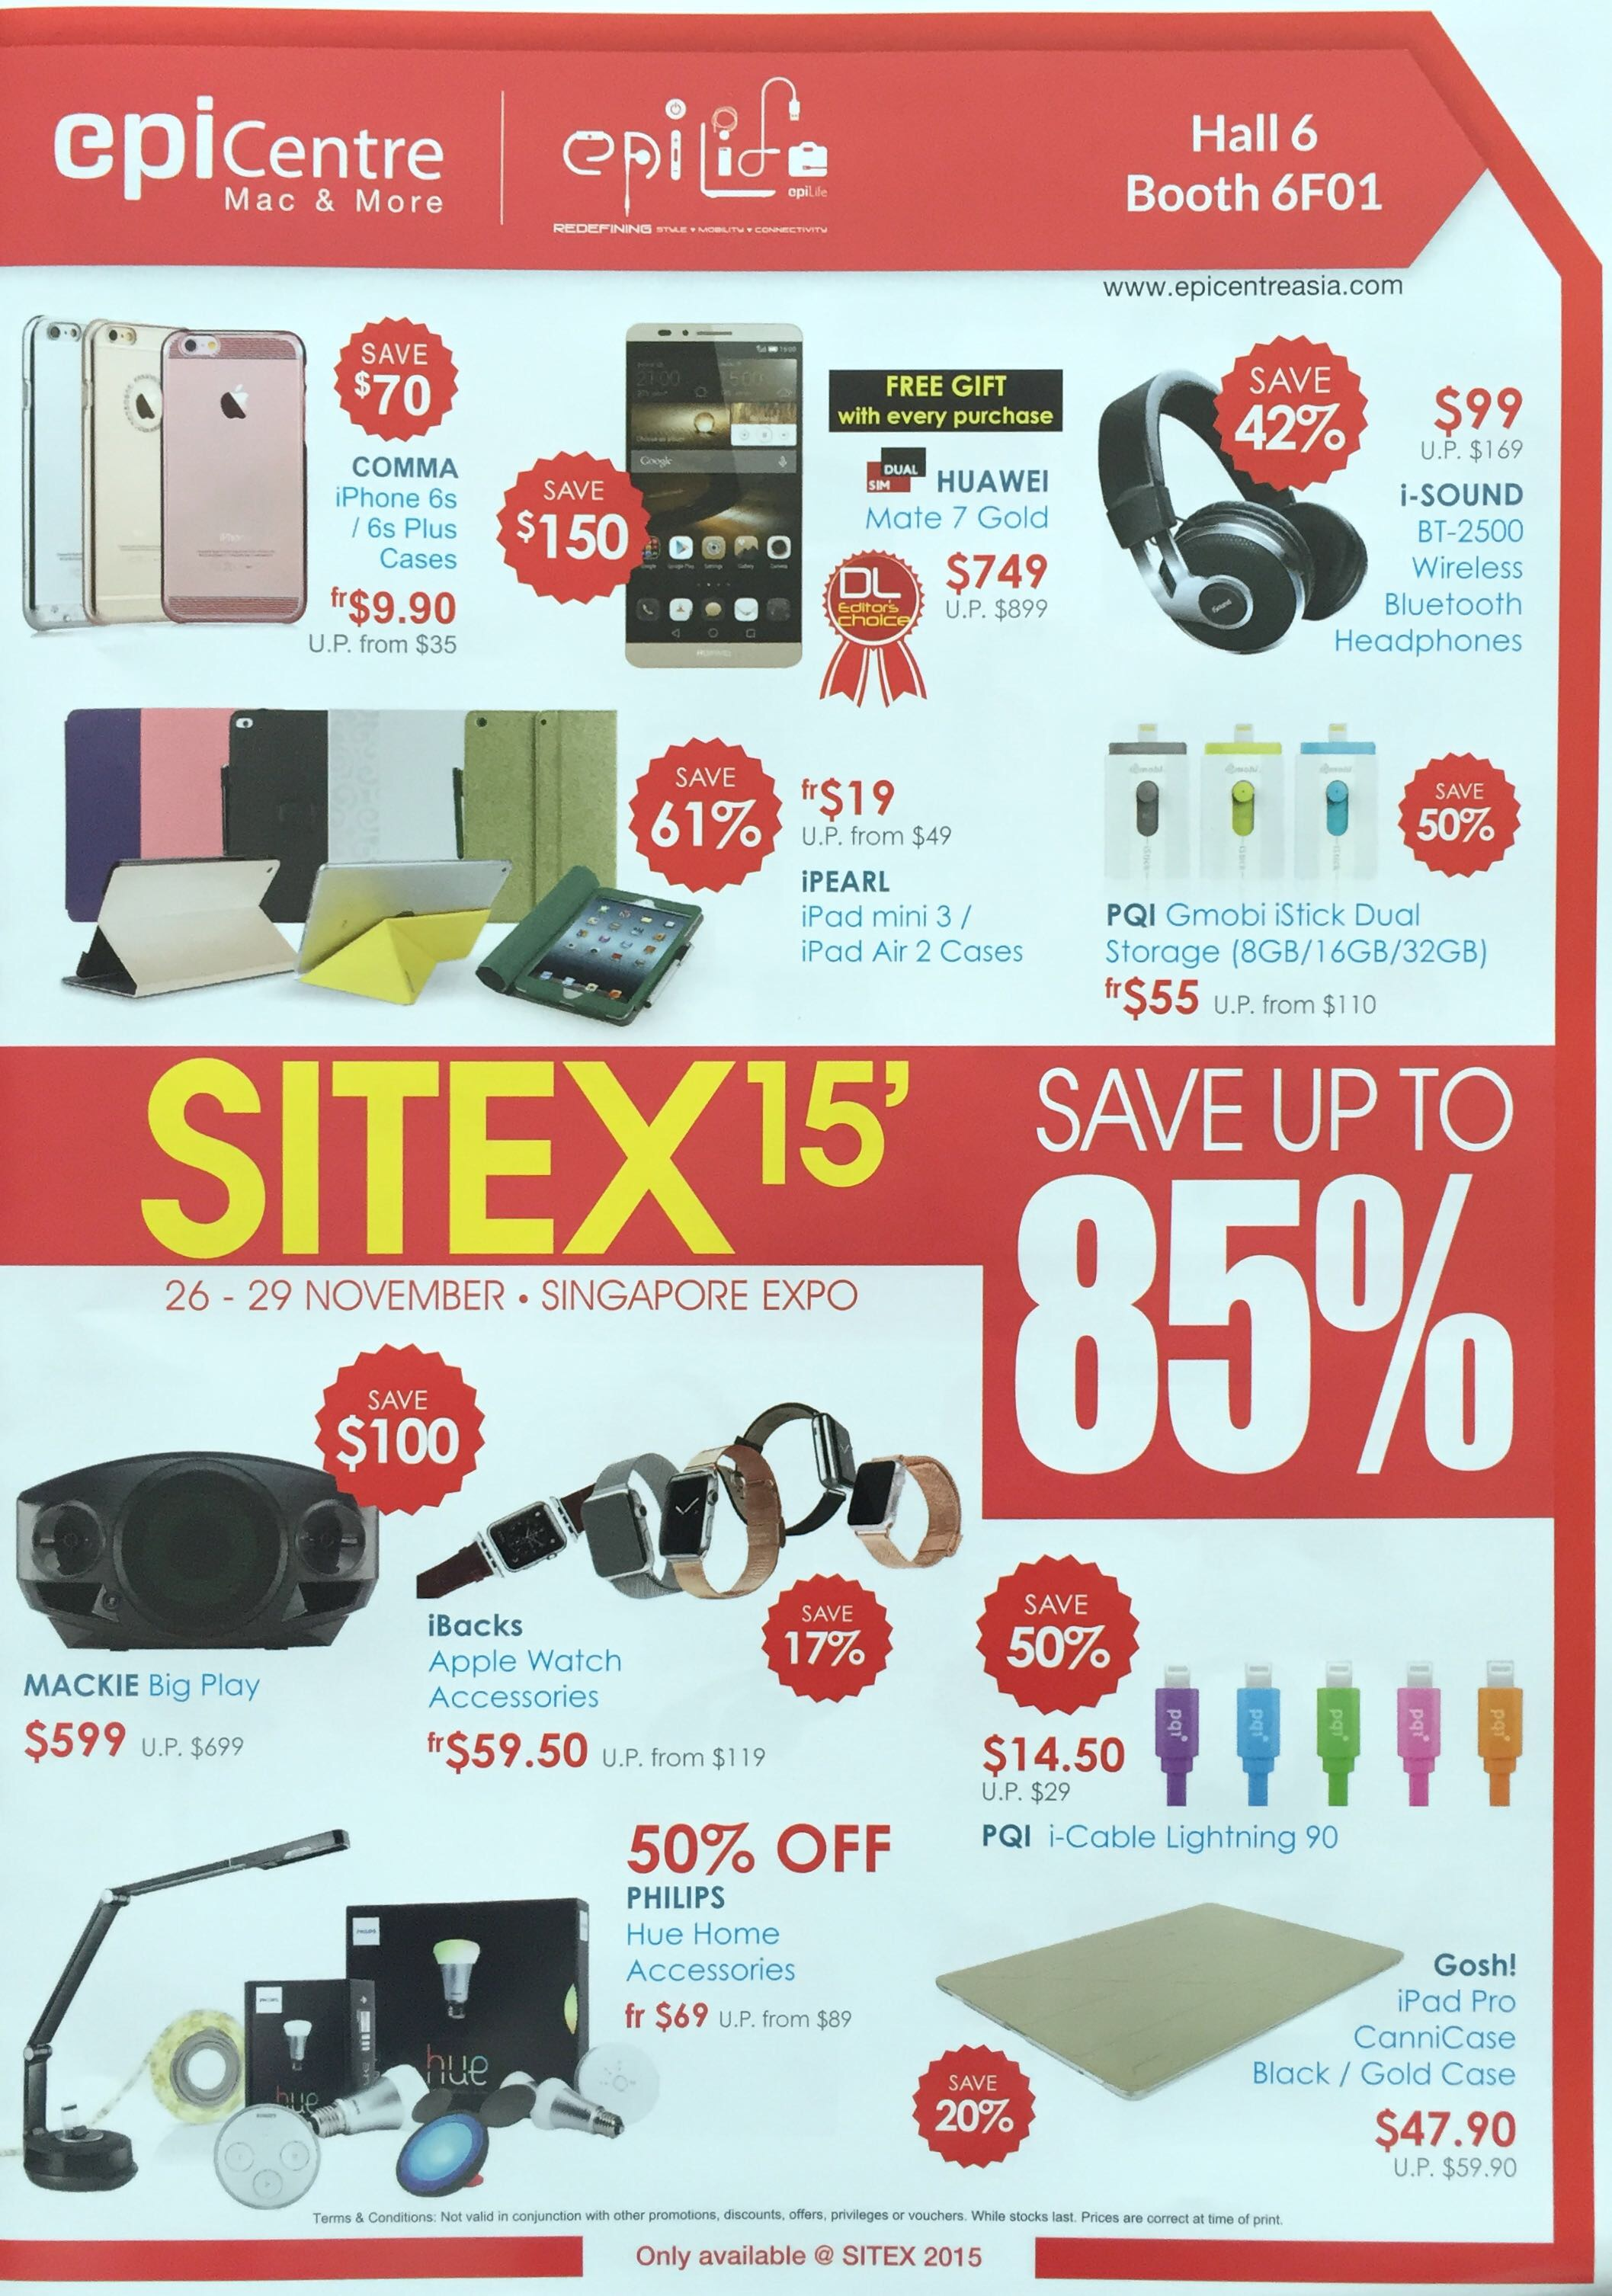 EPICENTRE @ SITEX 2015 - Save up to 85%